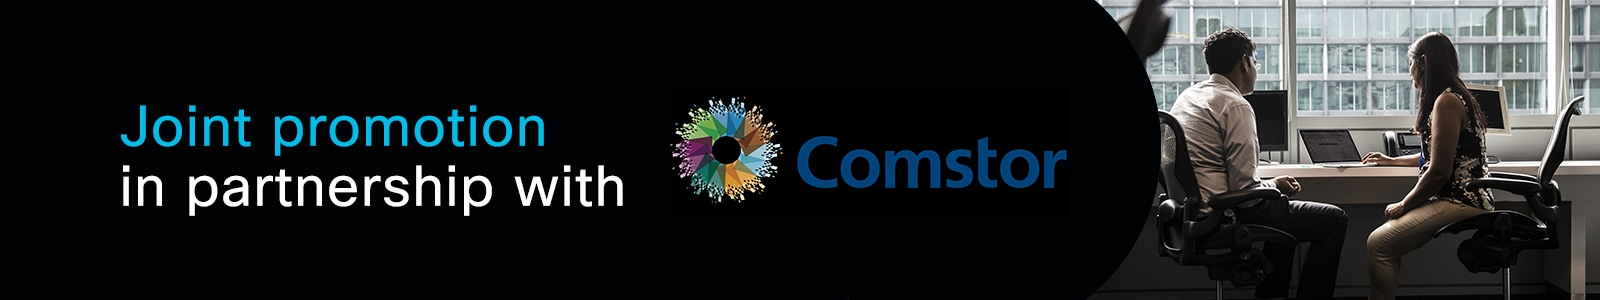 Cisco joint promotion in partnership with Comstor